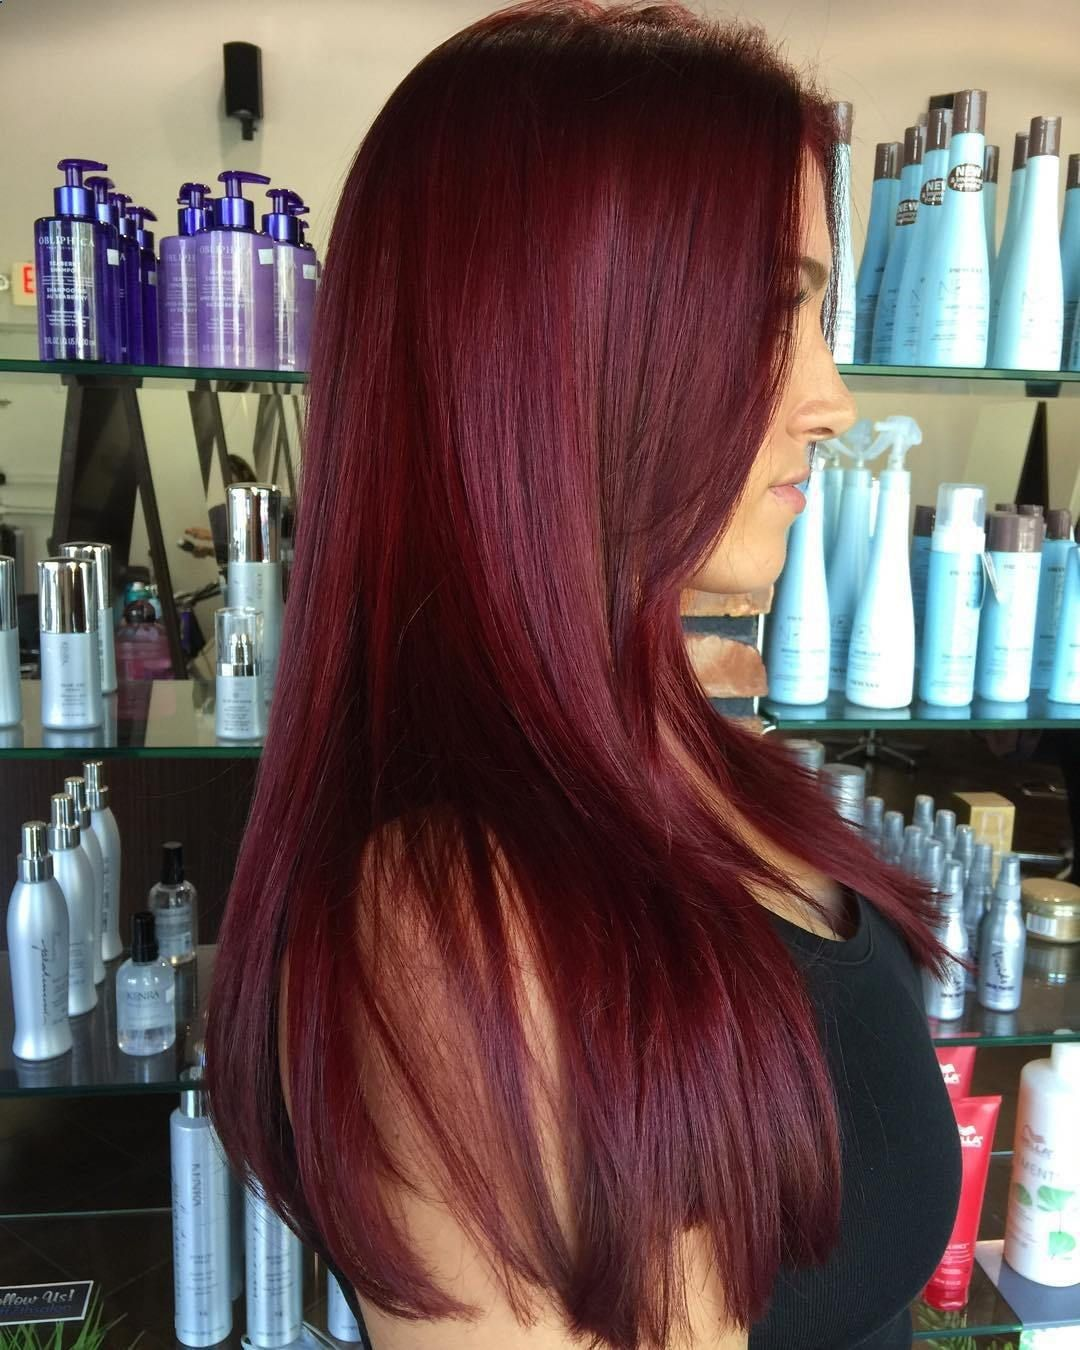 35 Shades Of Burgundy Hair Color For 2019 Stylish Heels Fashion Wine Hair Auburn Red Hair Color Shades Of Red Hair